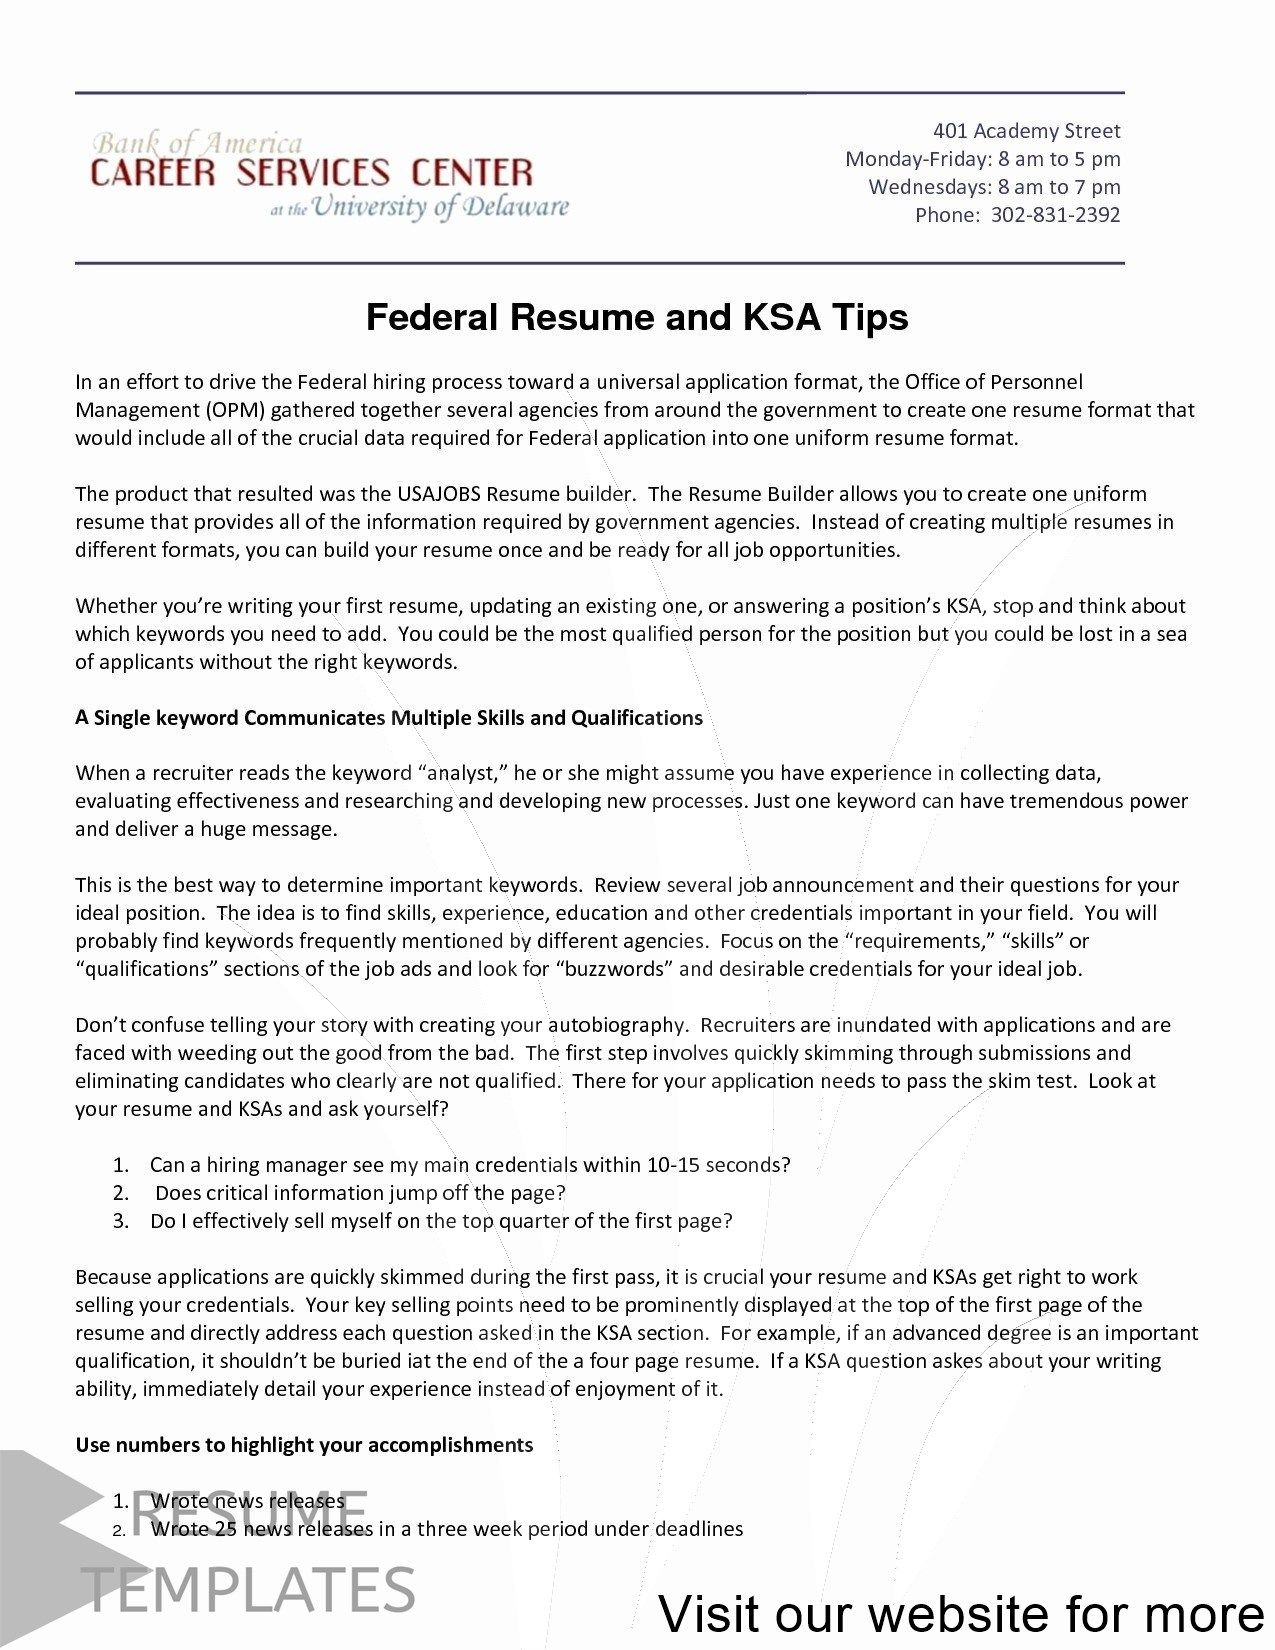 Resume Examples For Jobs Professional In 2020 Federal Resume